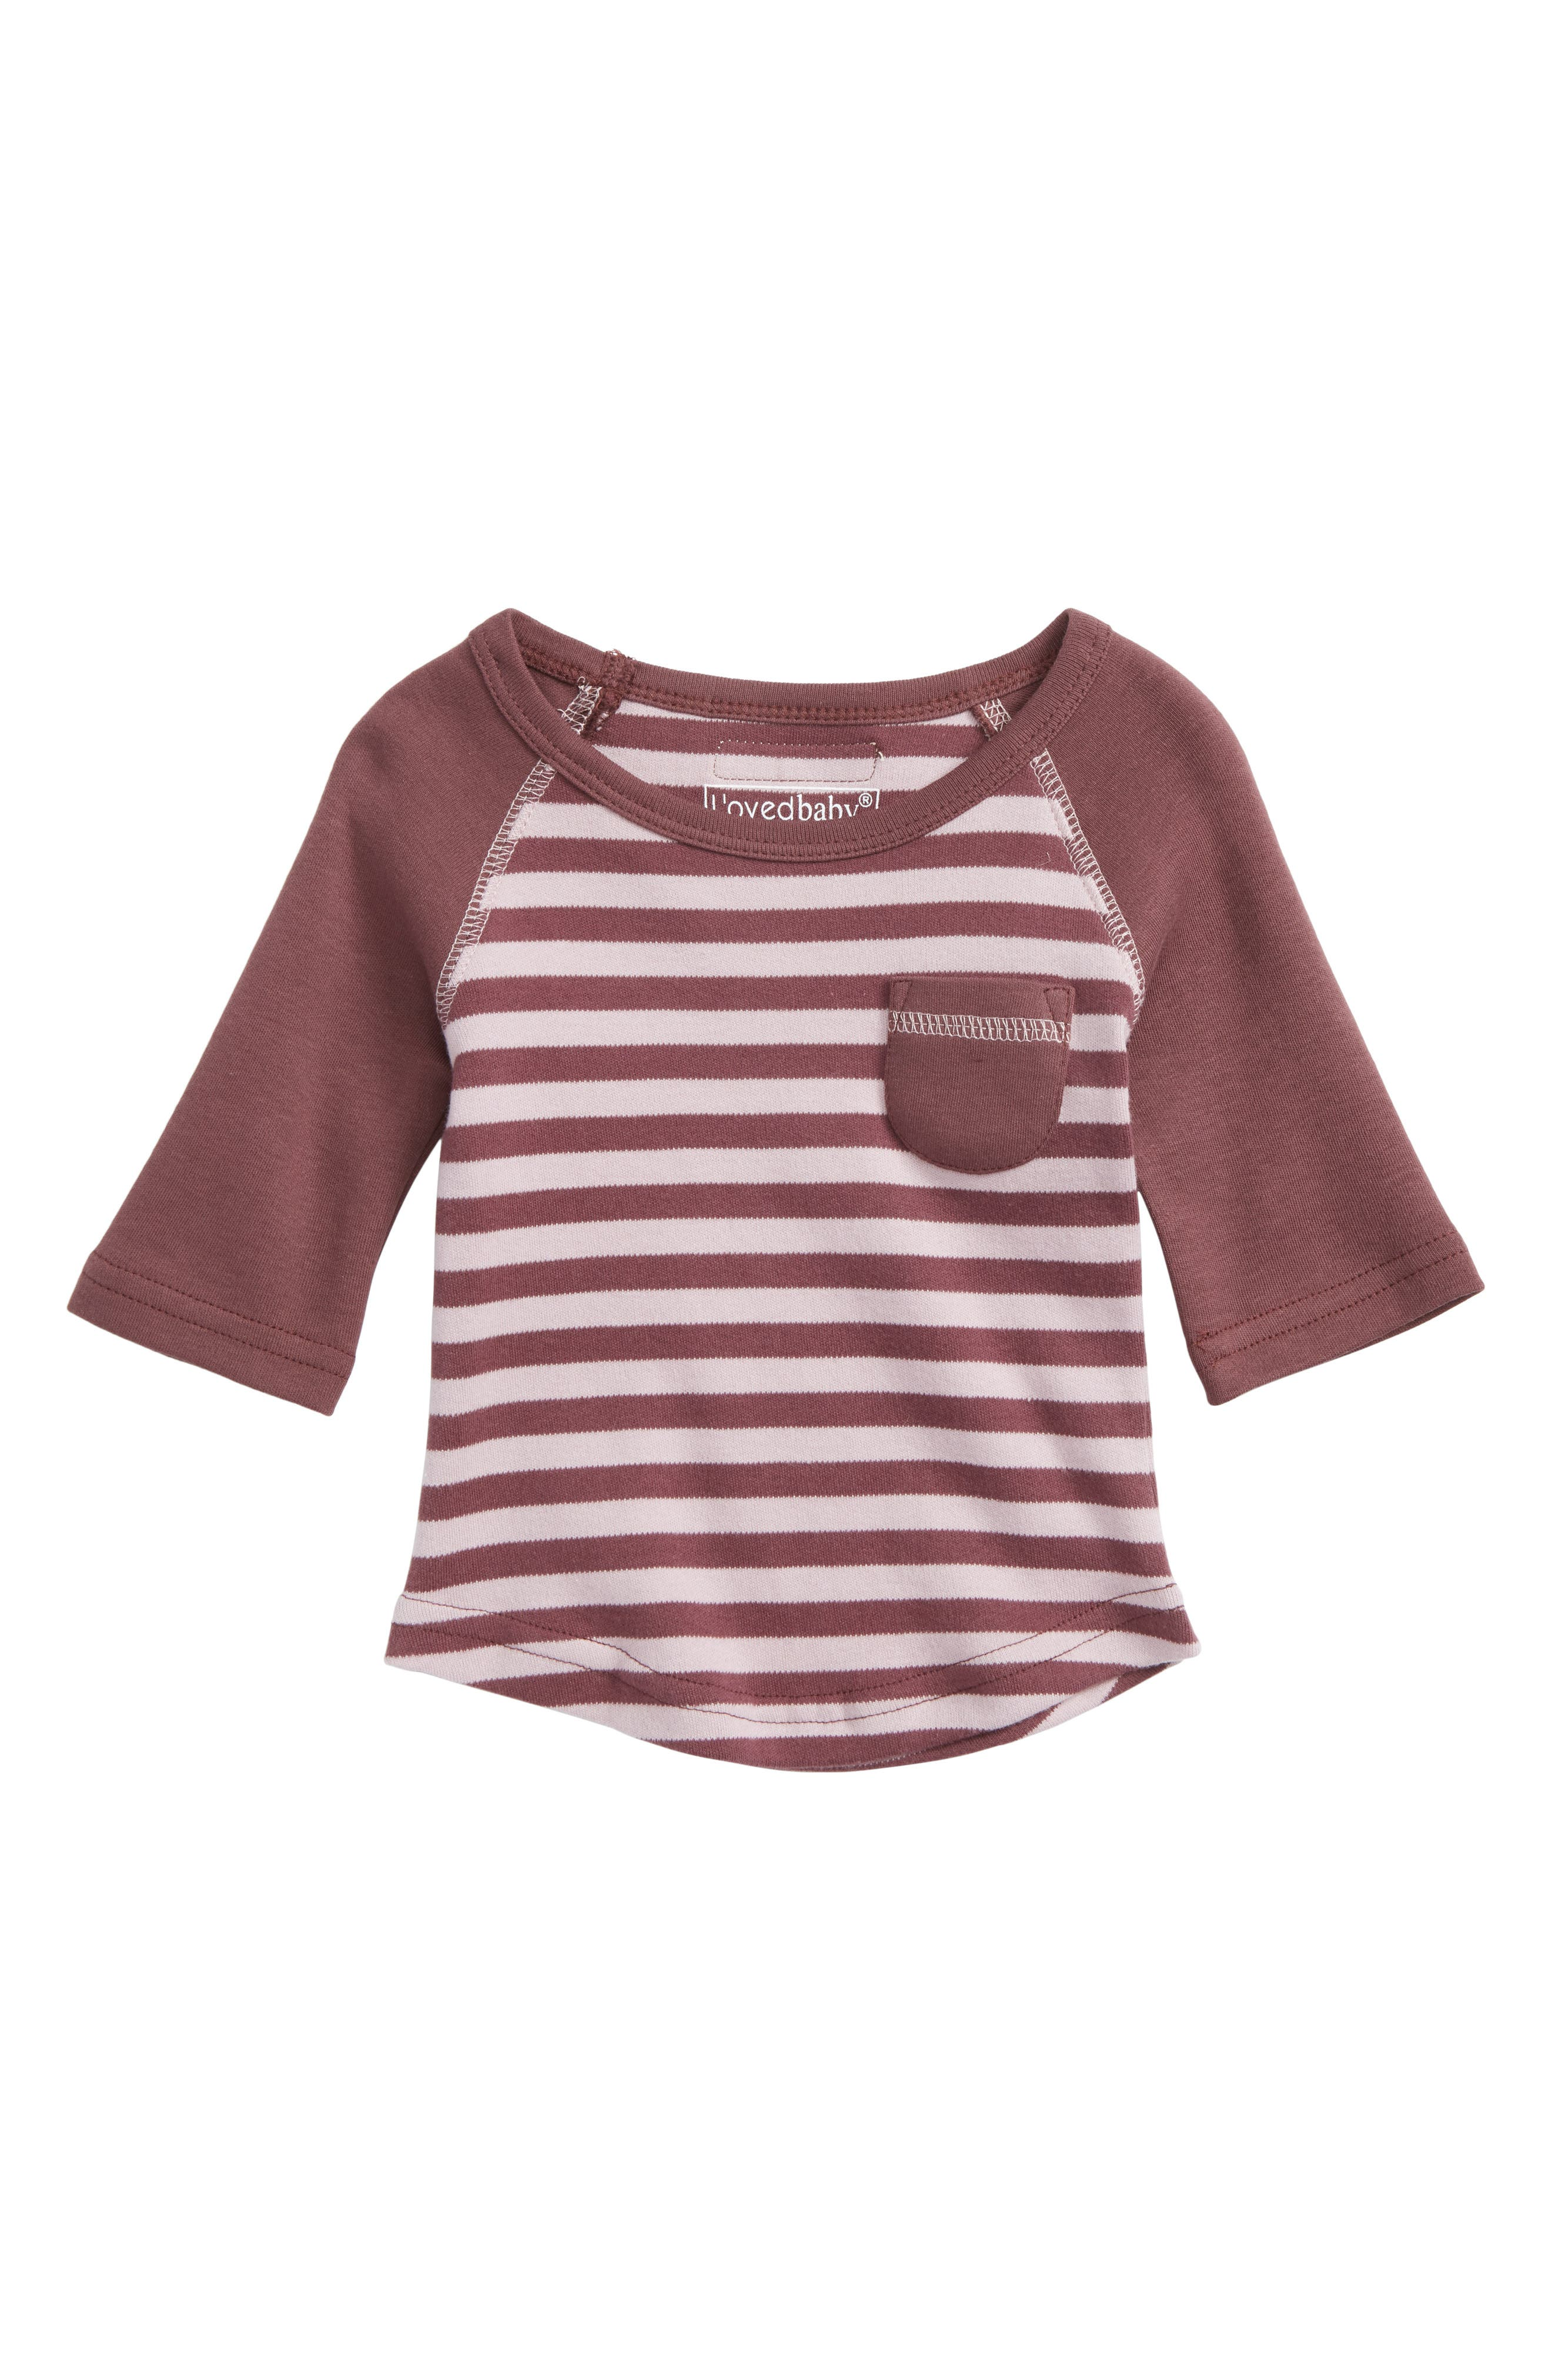 L'OVEDBABY,                             Organic Cotton Tee,                             Main thumbnail 1, color,                             500